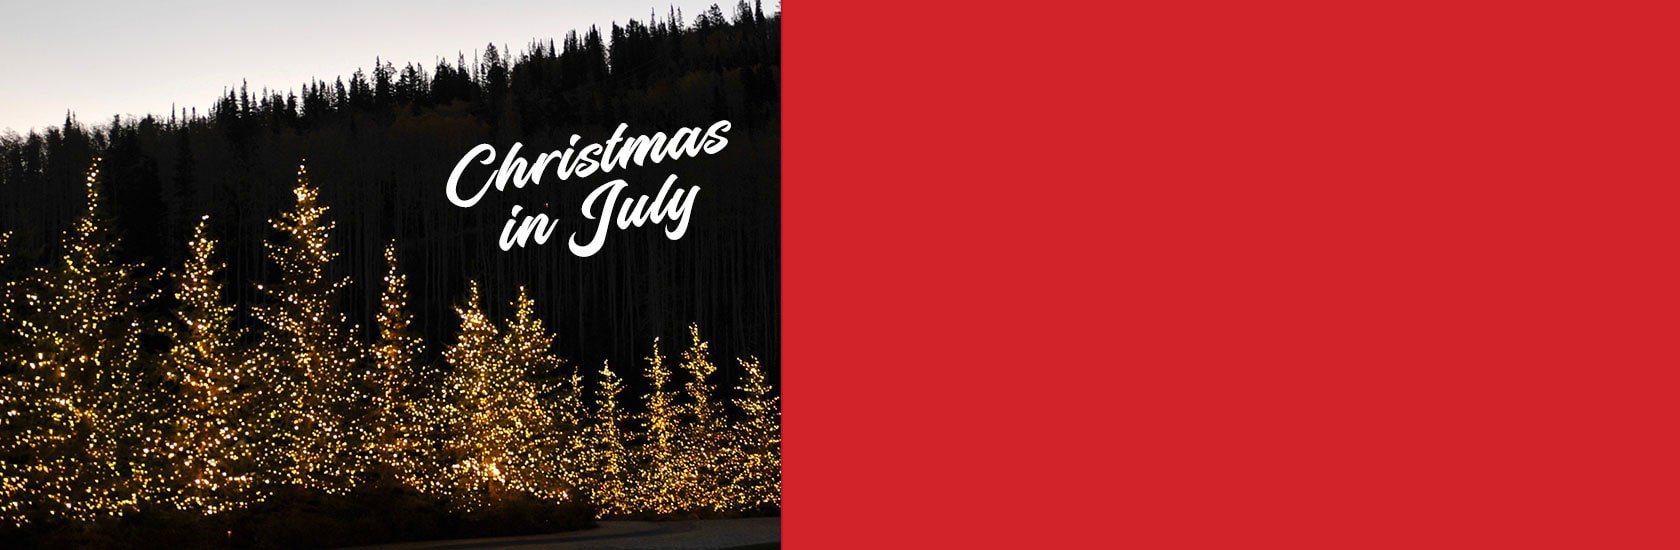 Christmas in July - Good Sam members get Double the Savings on Select Products for a Limited-Time